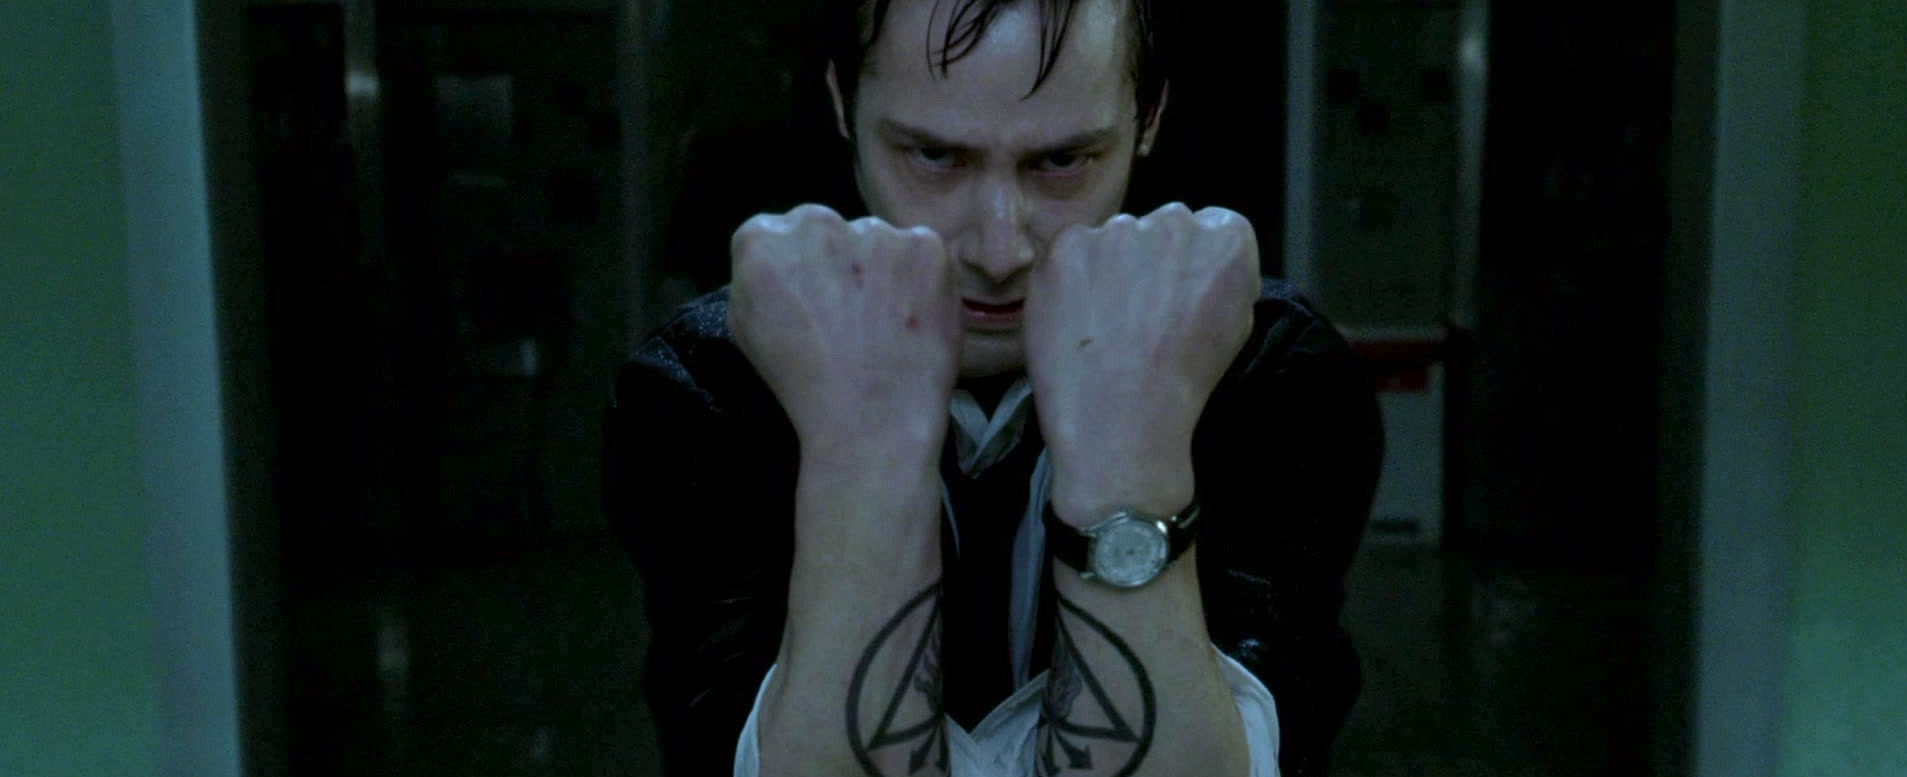 A wet Constantine holds up his two arms to form a rune tattoo